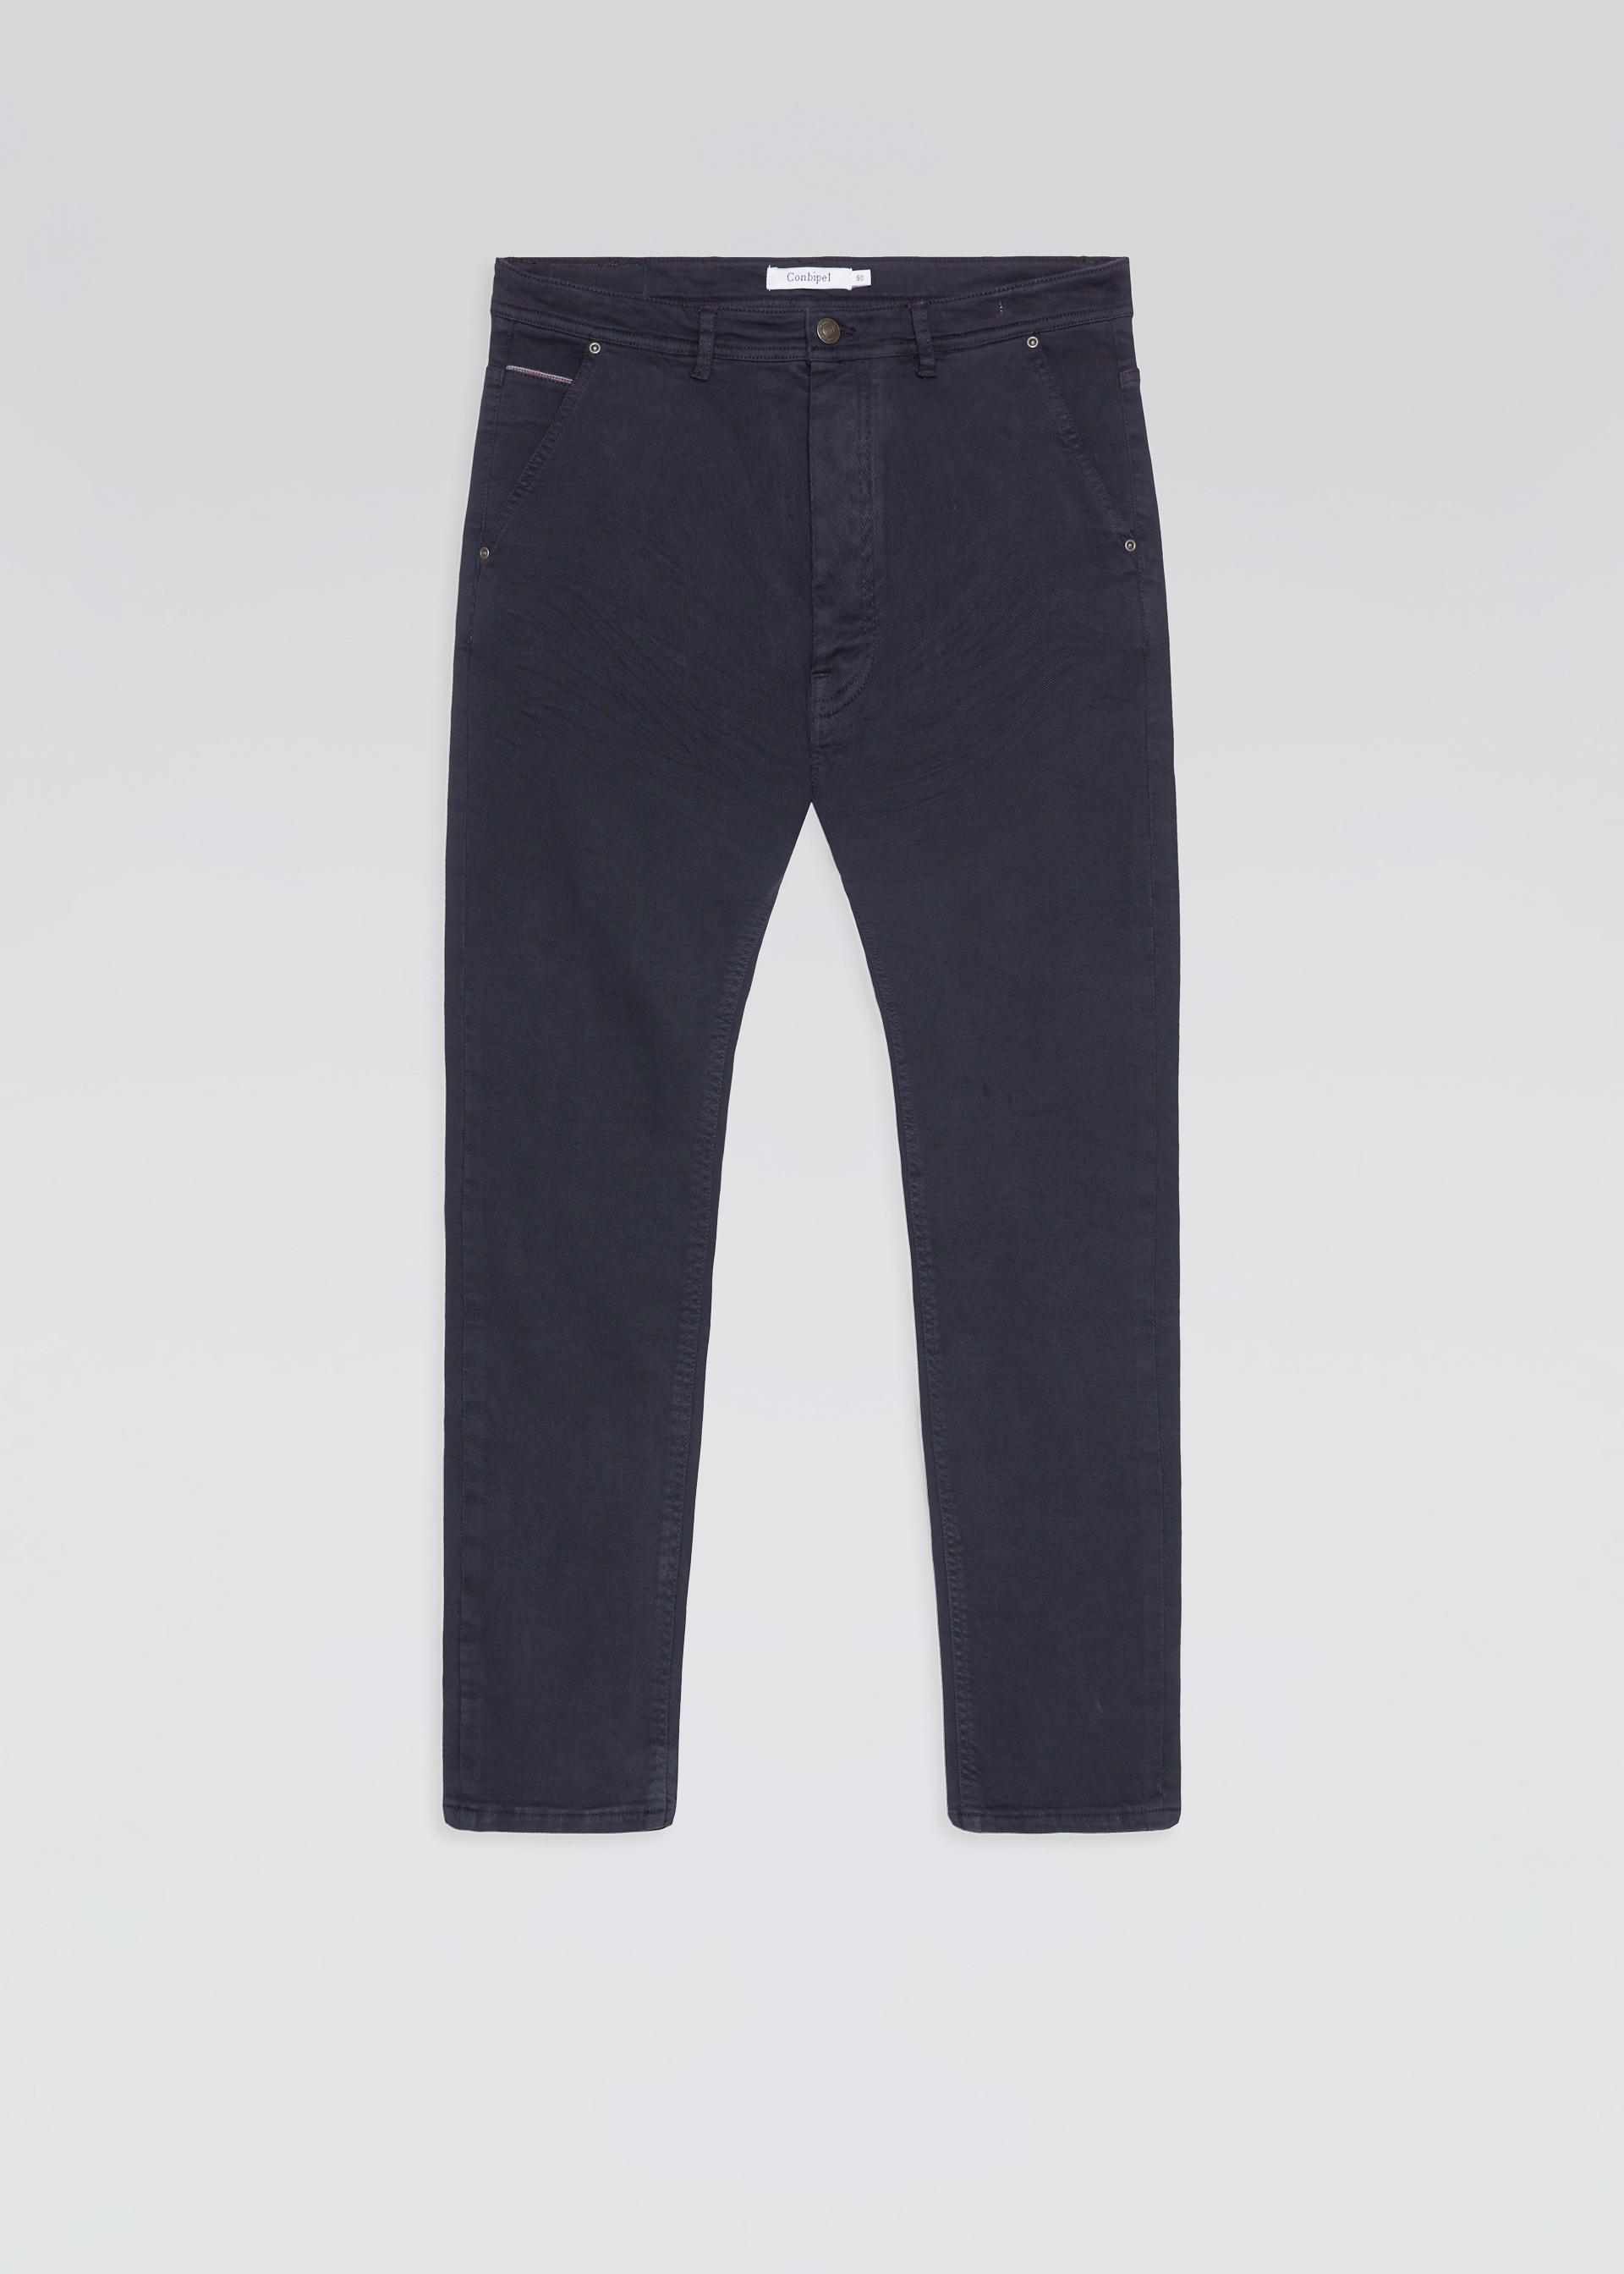 Pantaloni tailored fit